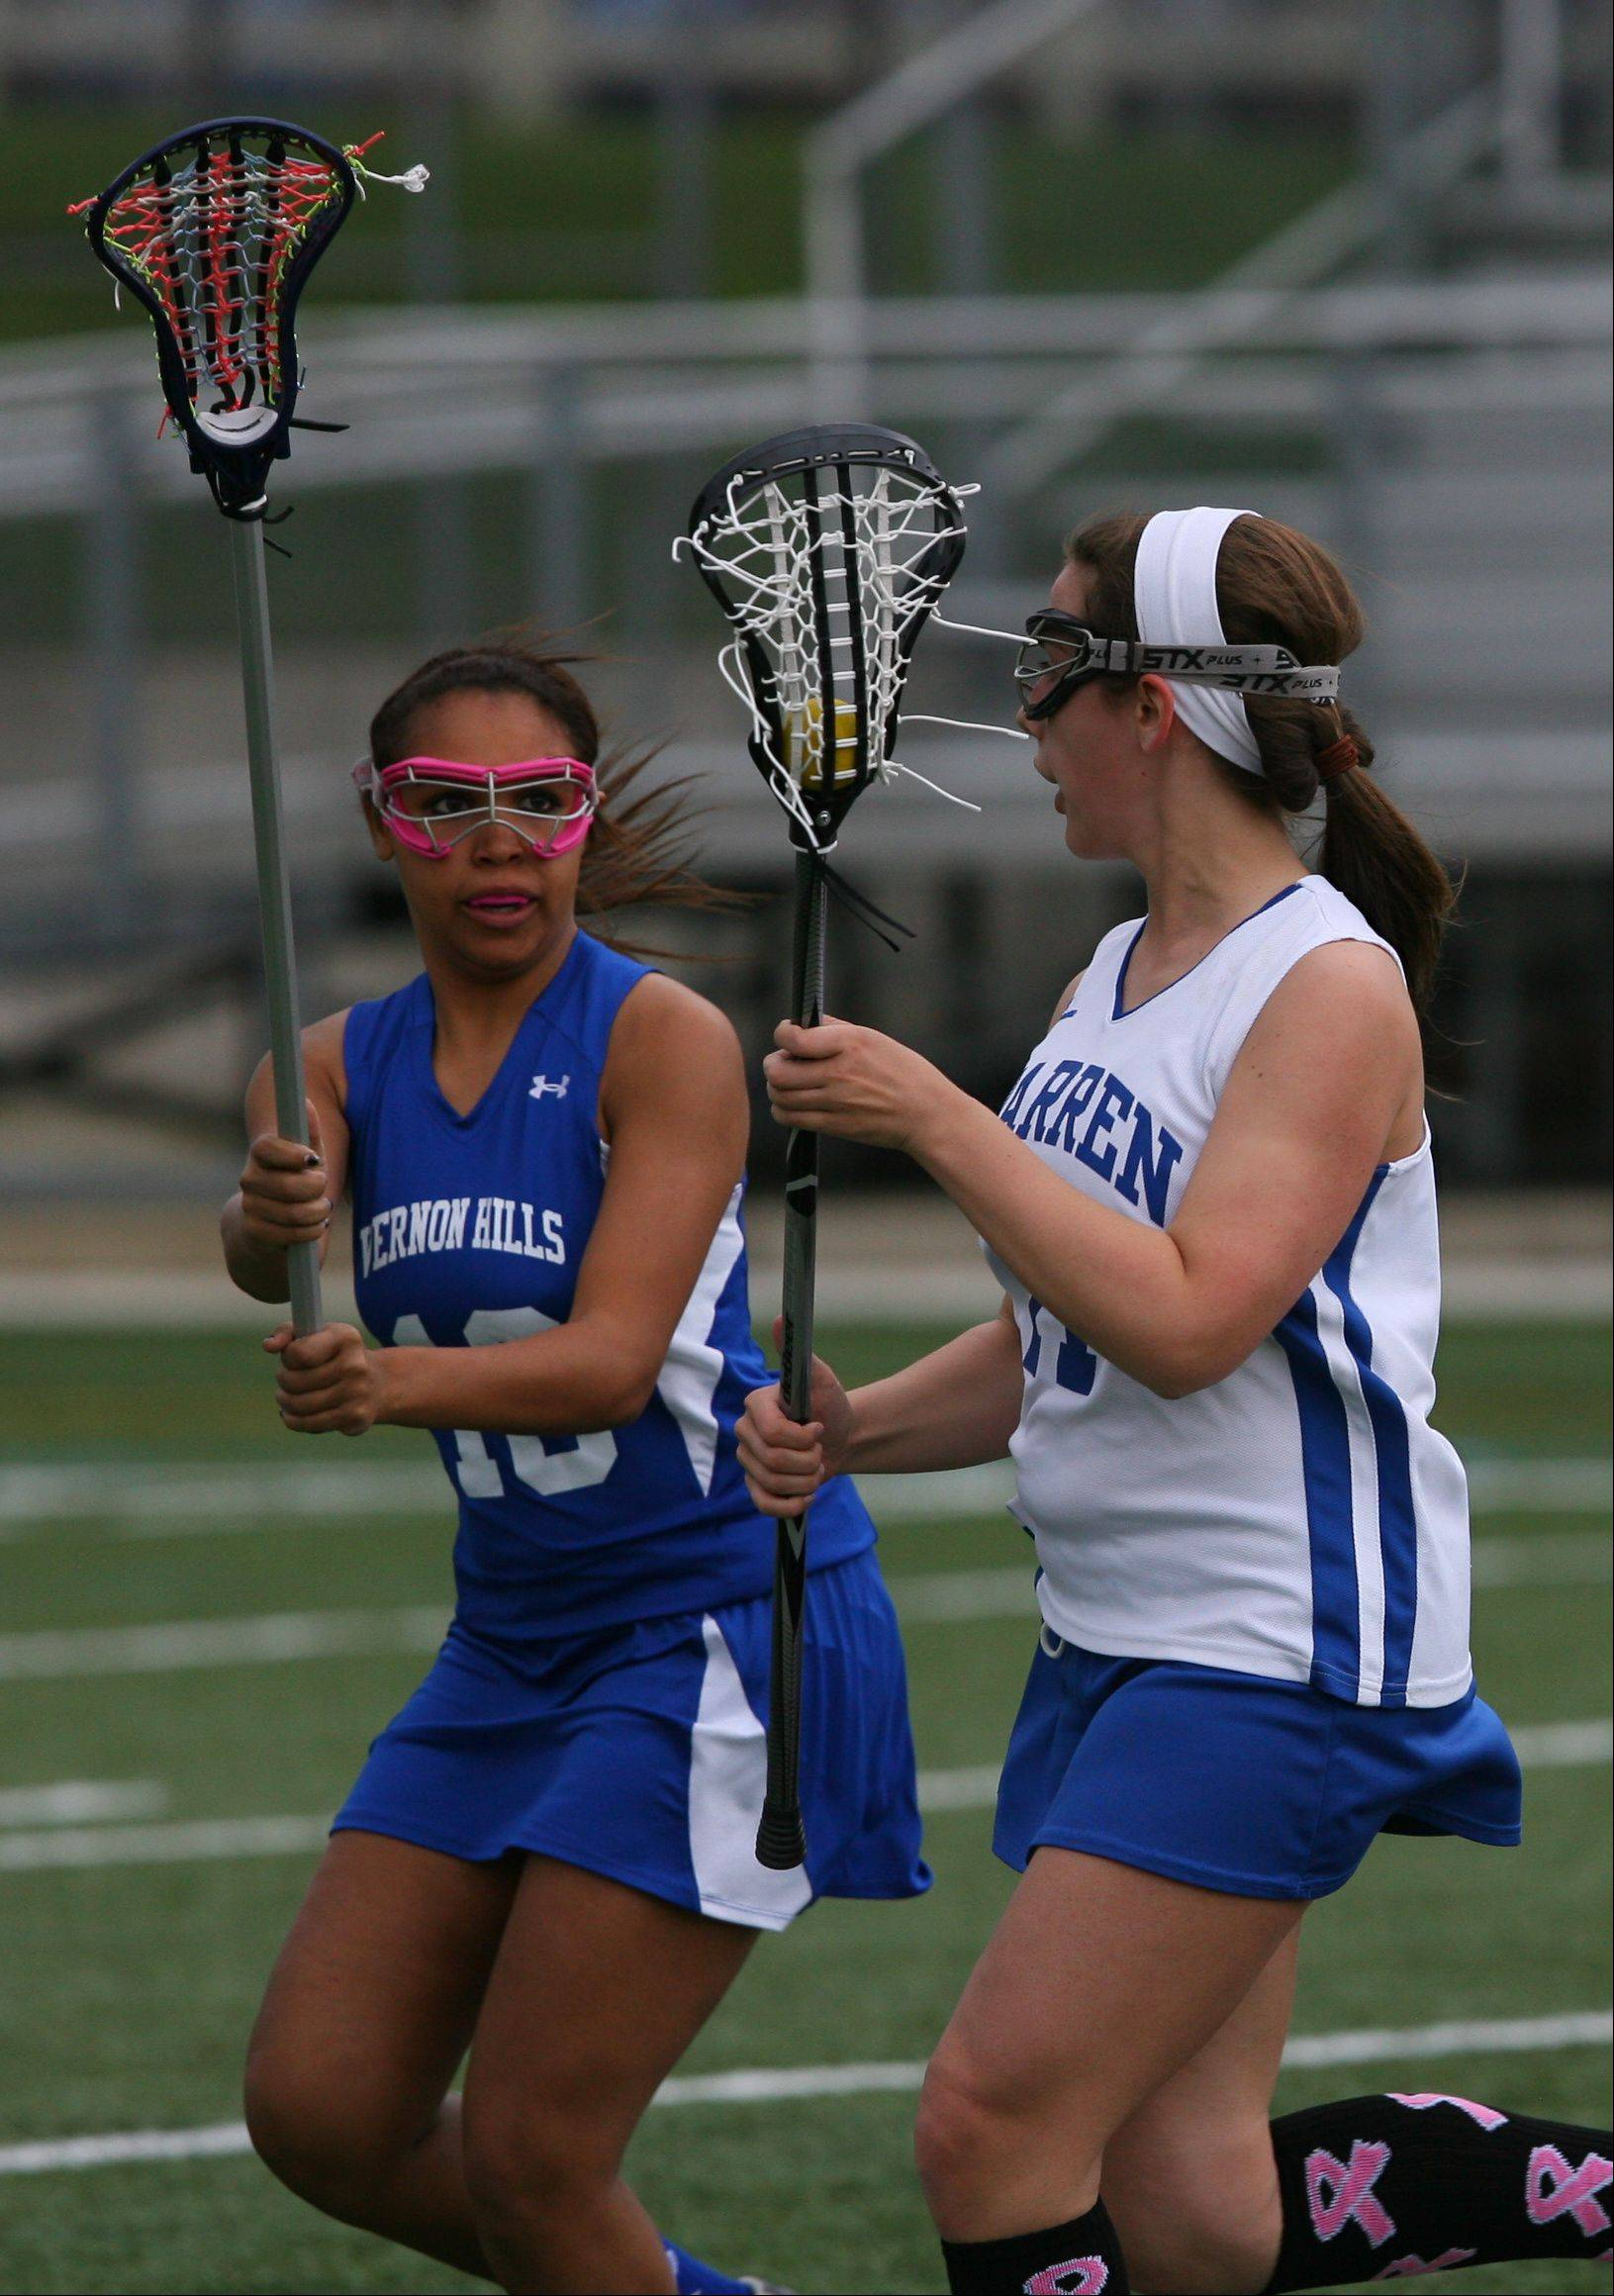 Images from the Vernon Hills at Warren girls lacrosse game Wednesday, April 18.